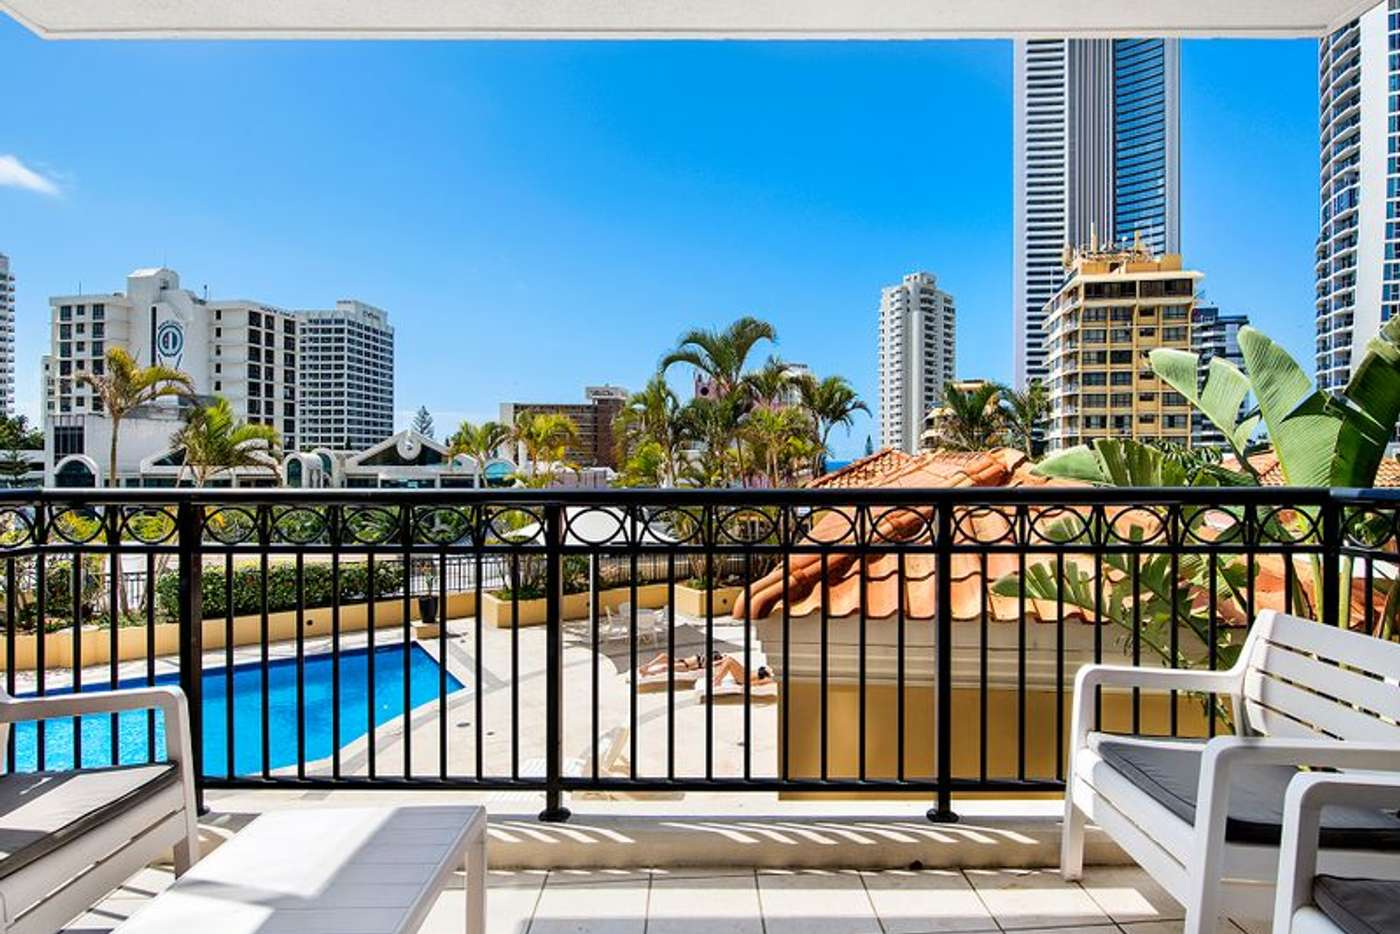 Main view of Homely apartment listing, 1035/23 Ferny Avenue, Surfers Paradise QLD 4217